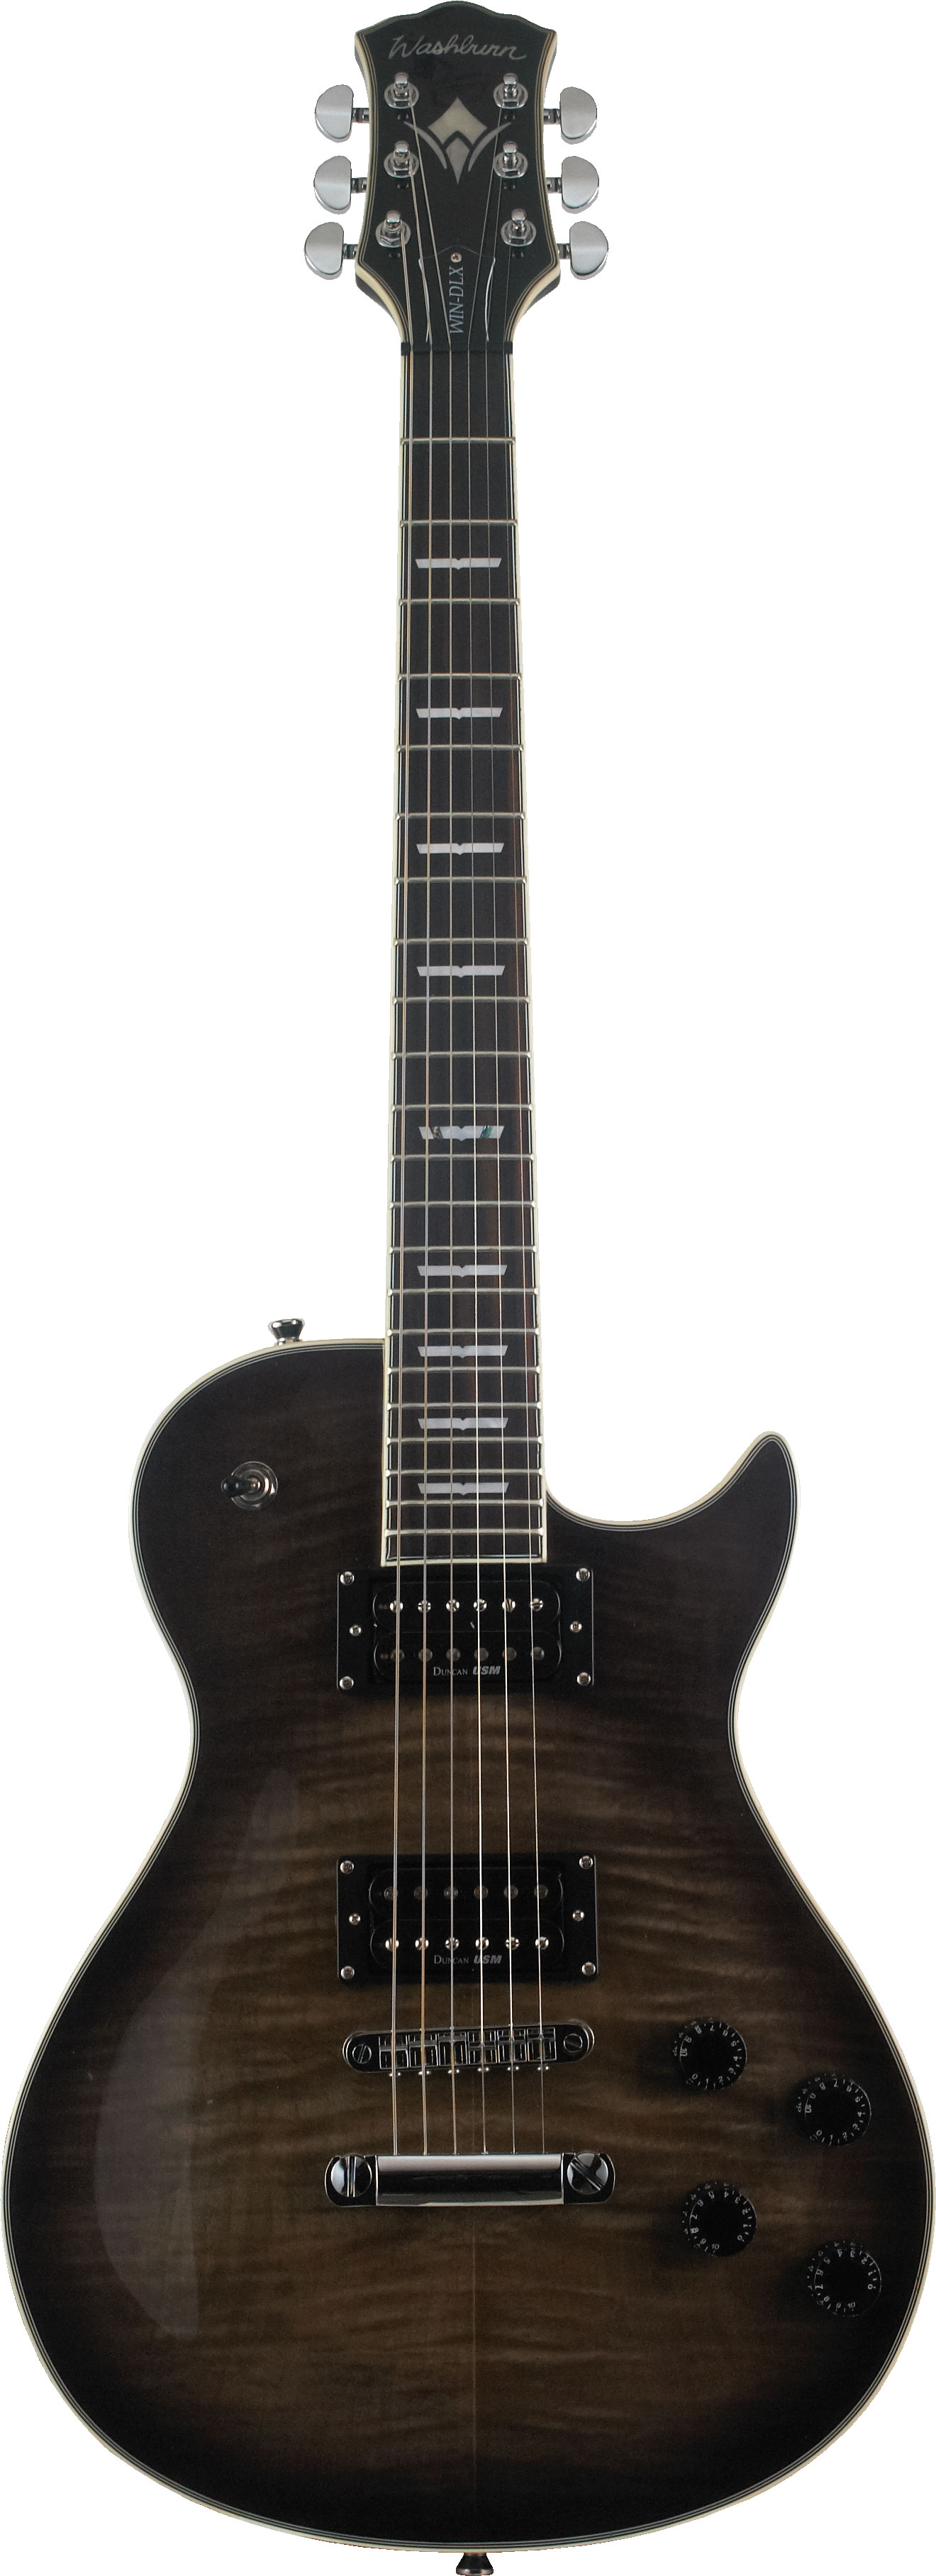 Электрогитара Washburn WINDLXFBB